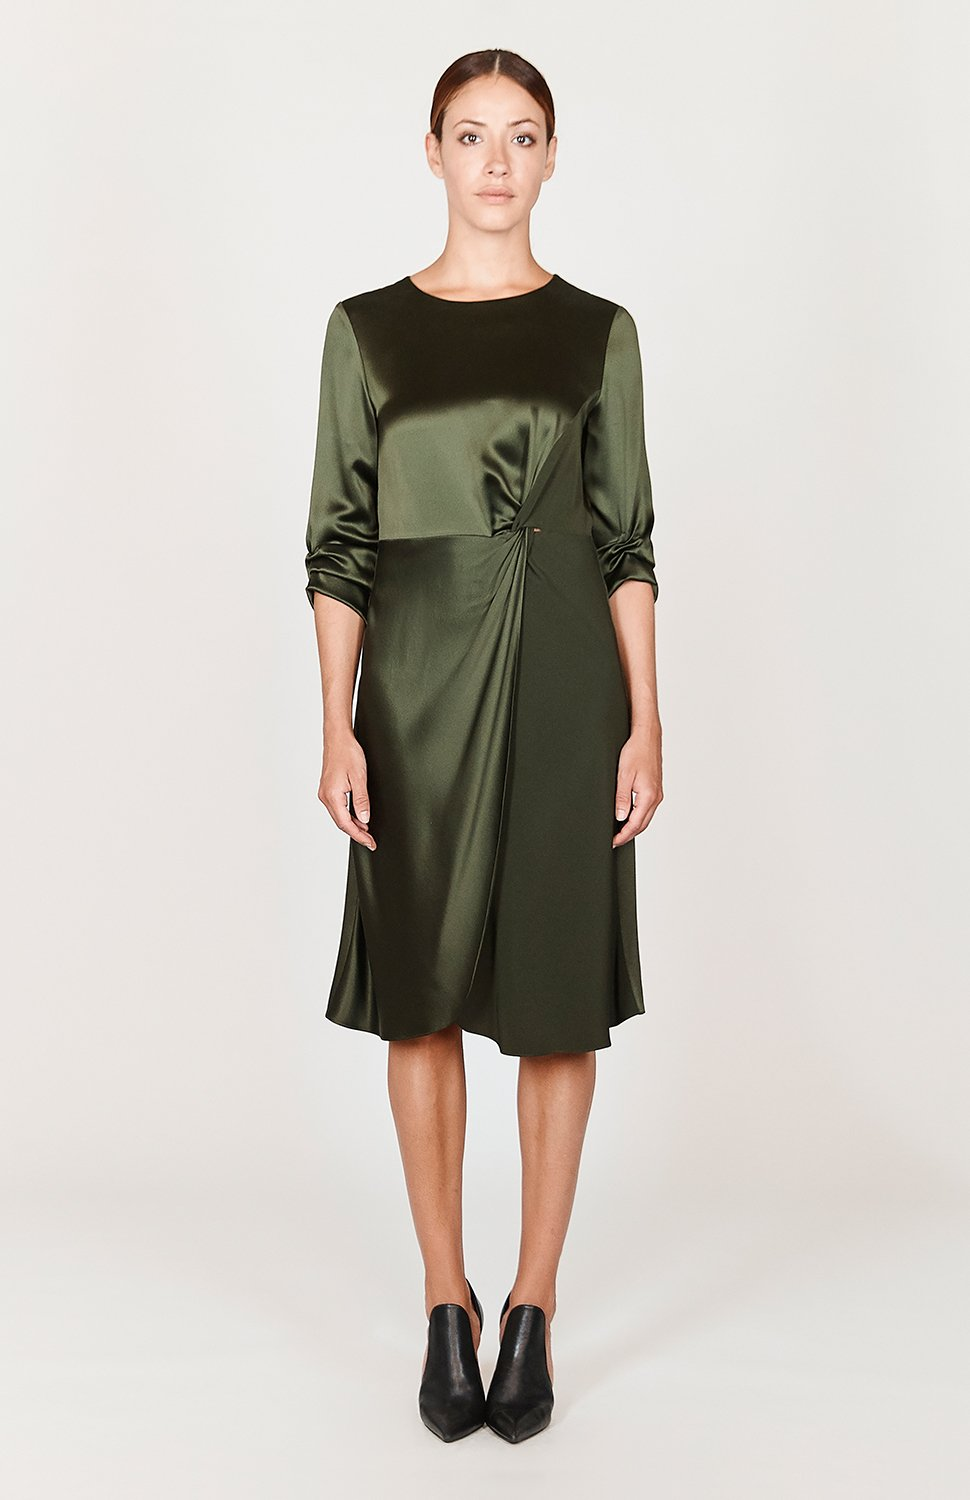 Mi Jong Lee Satin Faux Wrap Two Tone Dress - Capsule 1